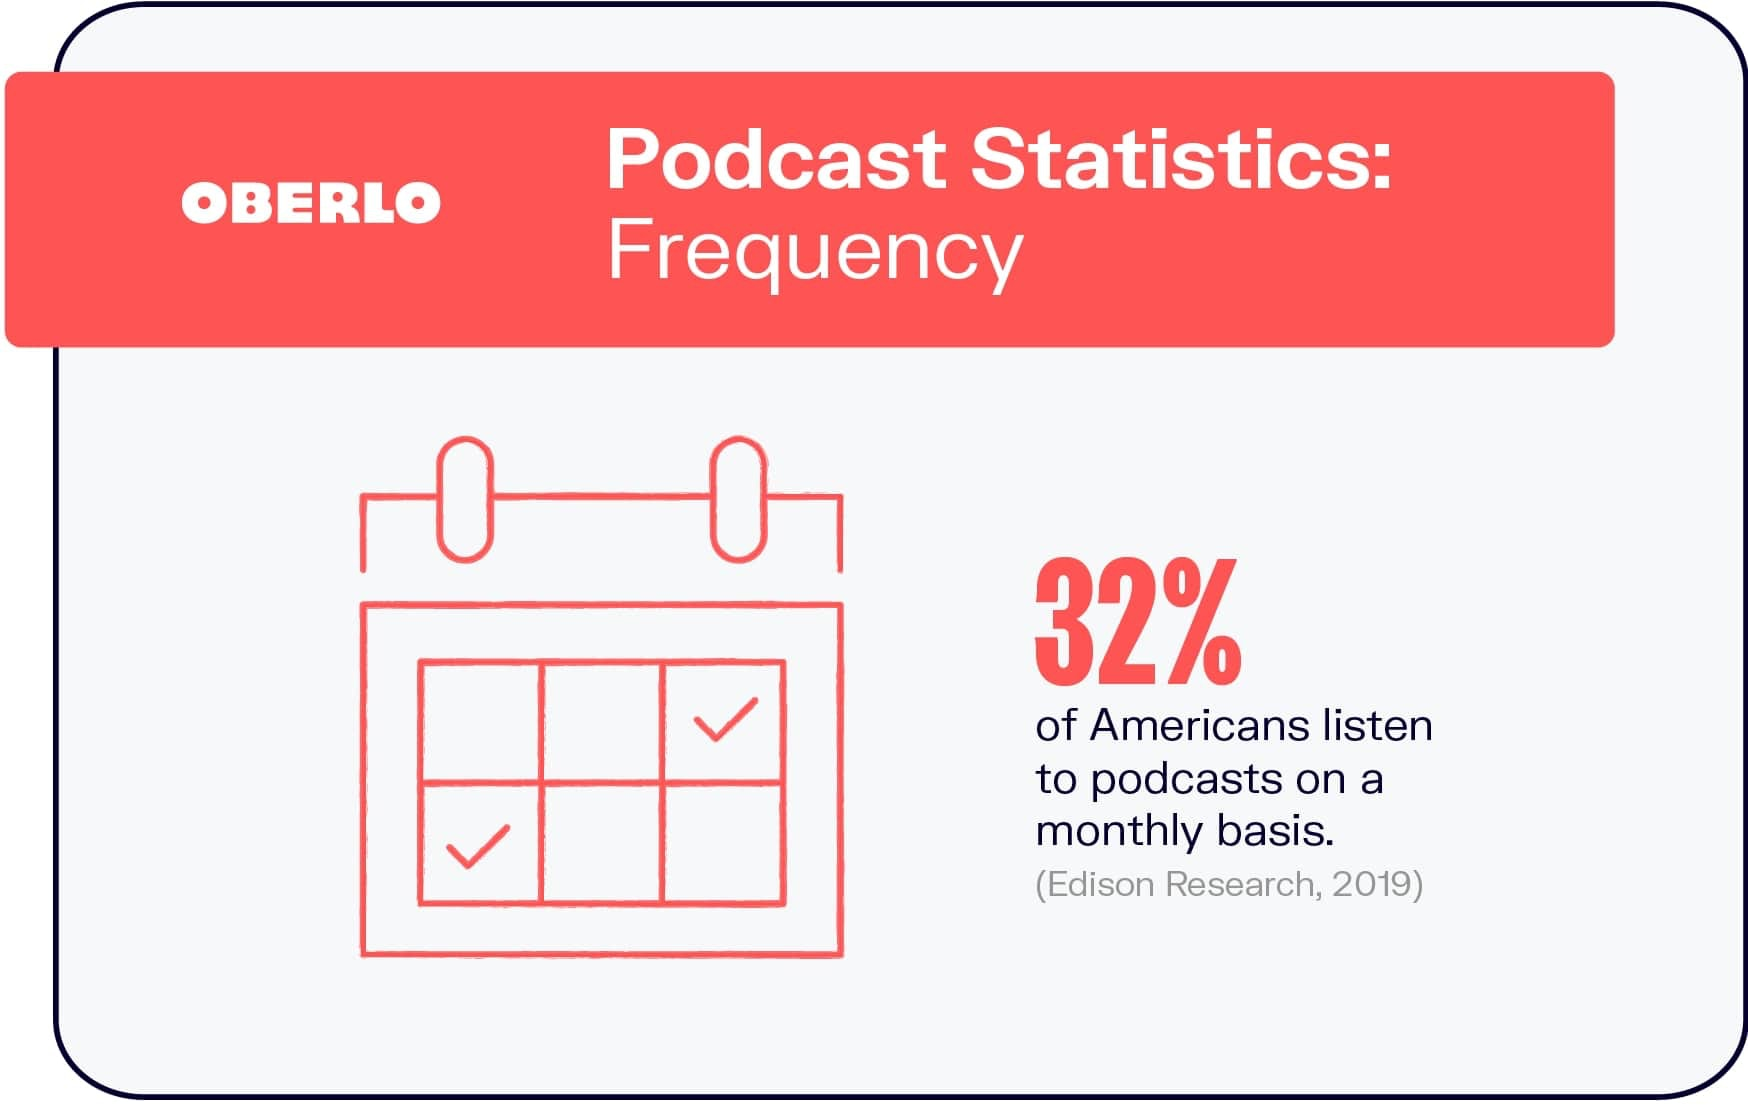 Podcast Statistics: Frequency